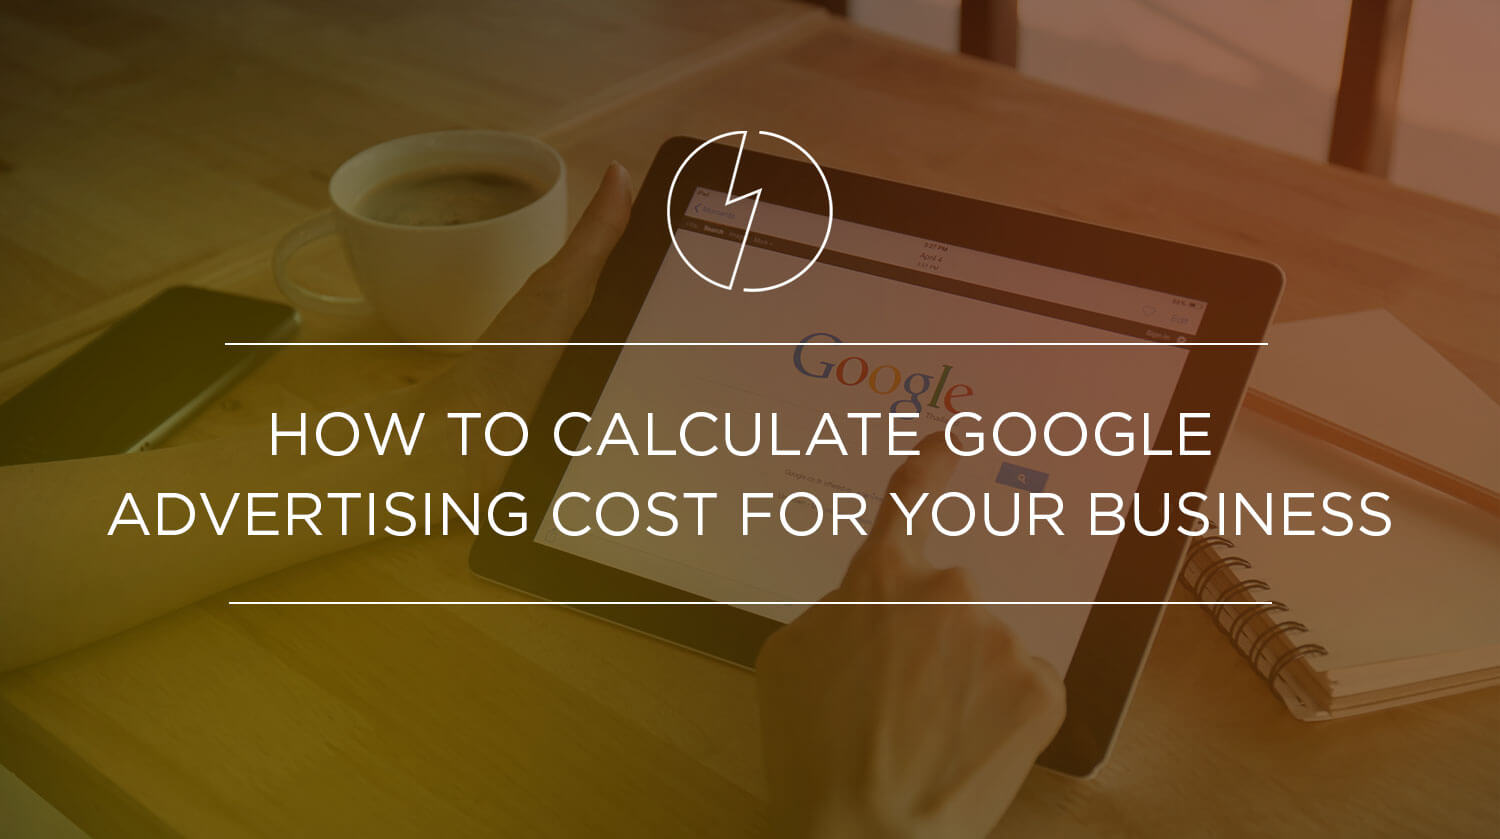 How to Calculate Google Advertising Cost for Your Business